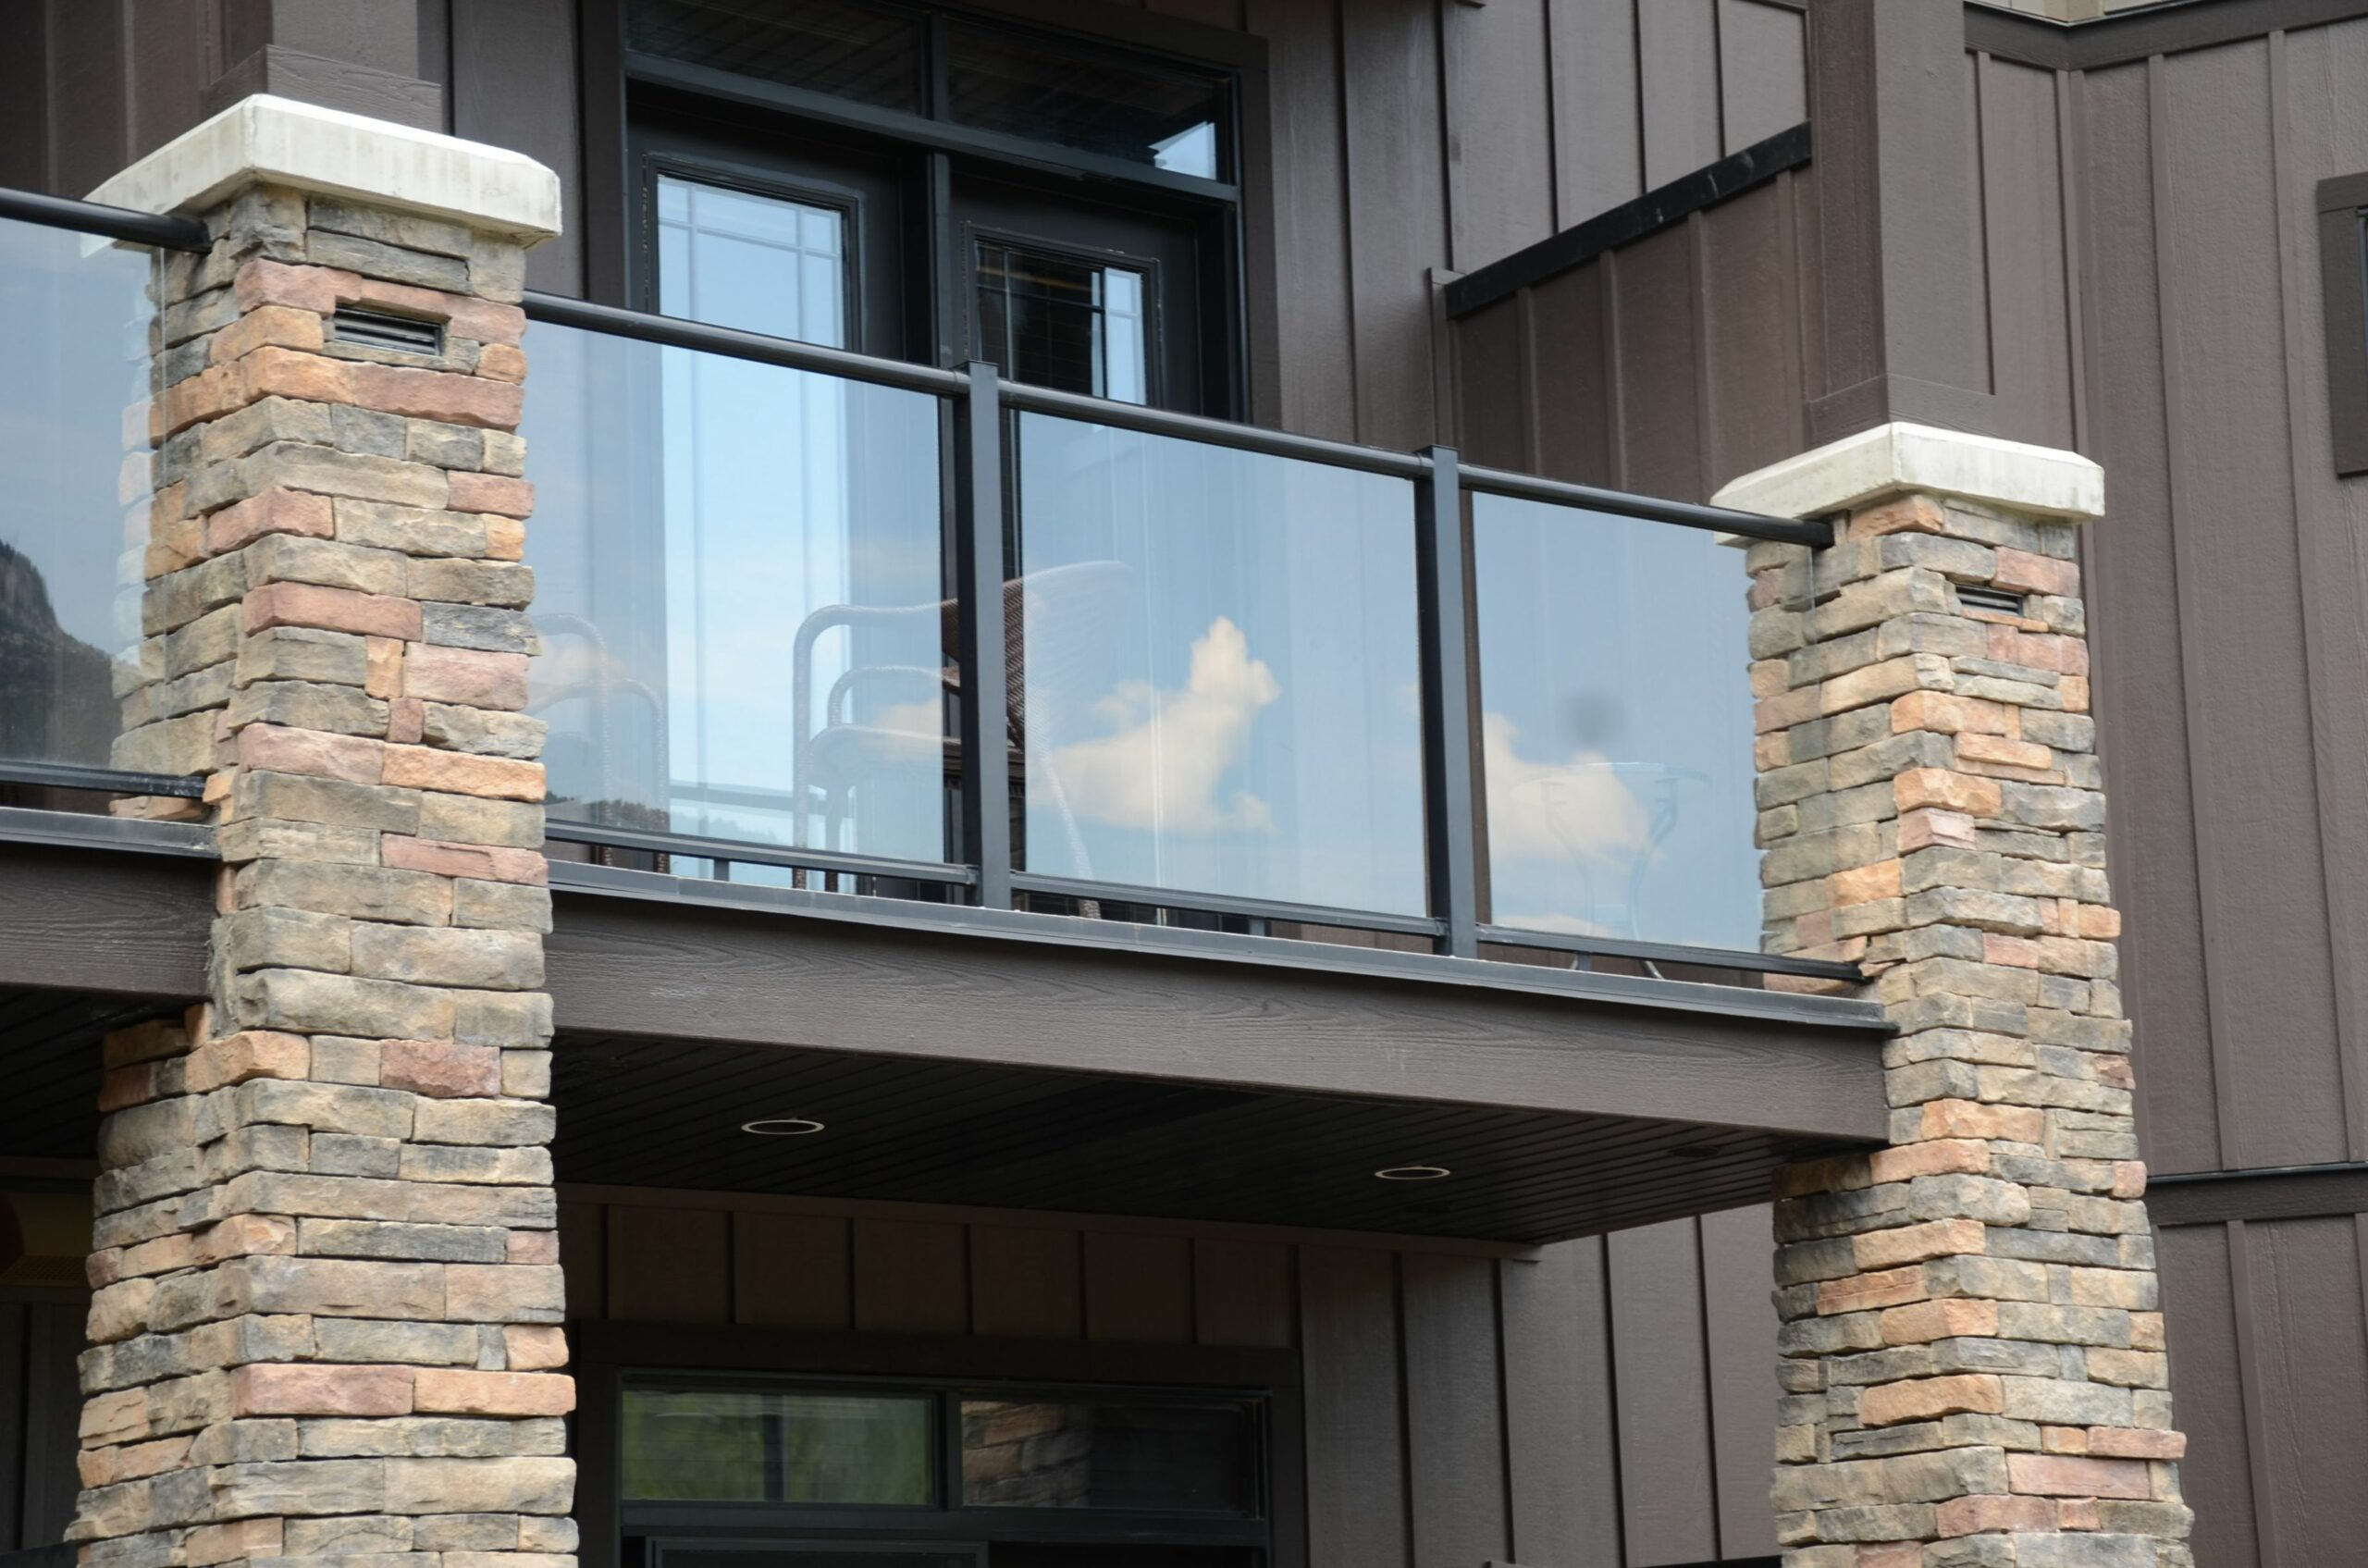 Glass railing balcony with stone pillars | Glass balcony, Balcony ..